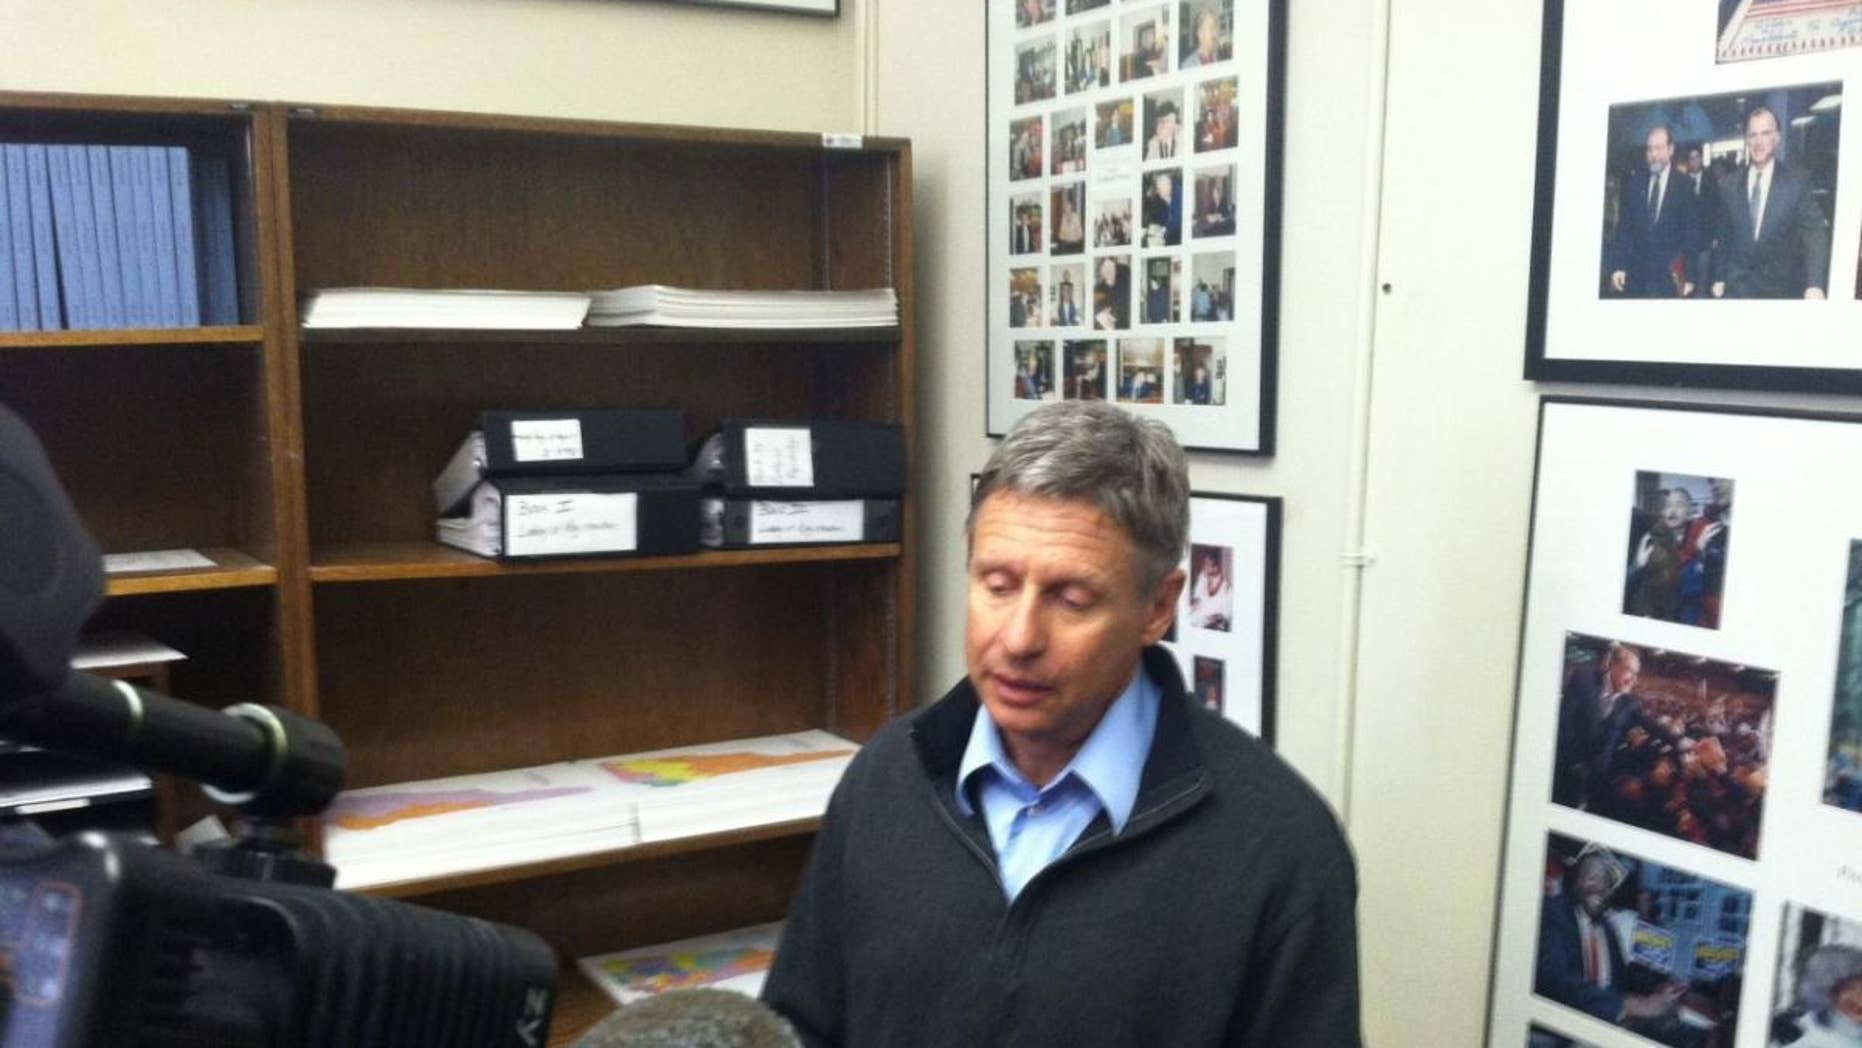 Gary Johnson flew all night to make the filing deadline for the New Hampshire presidential primary. (Fox News Photo/Andrew Fone)